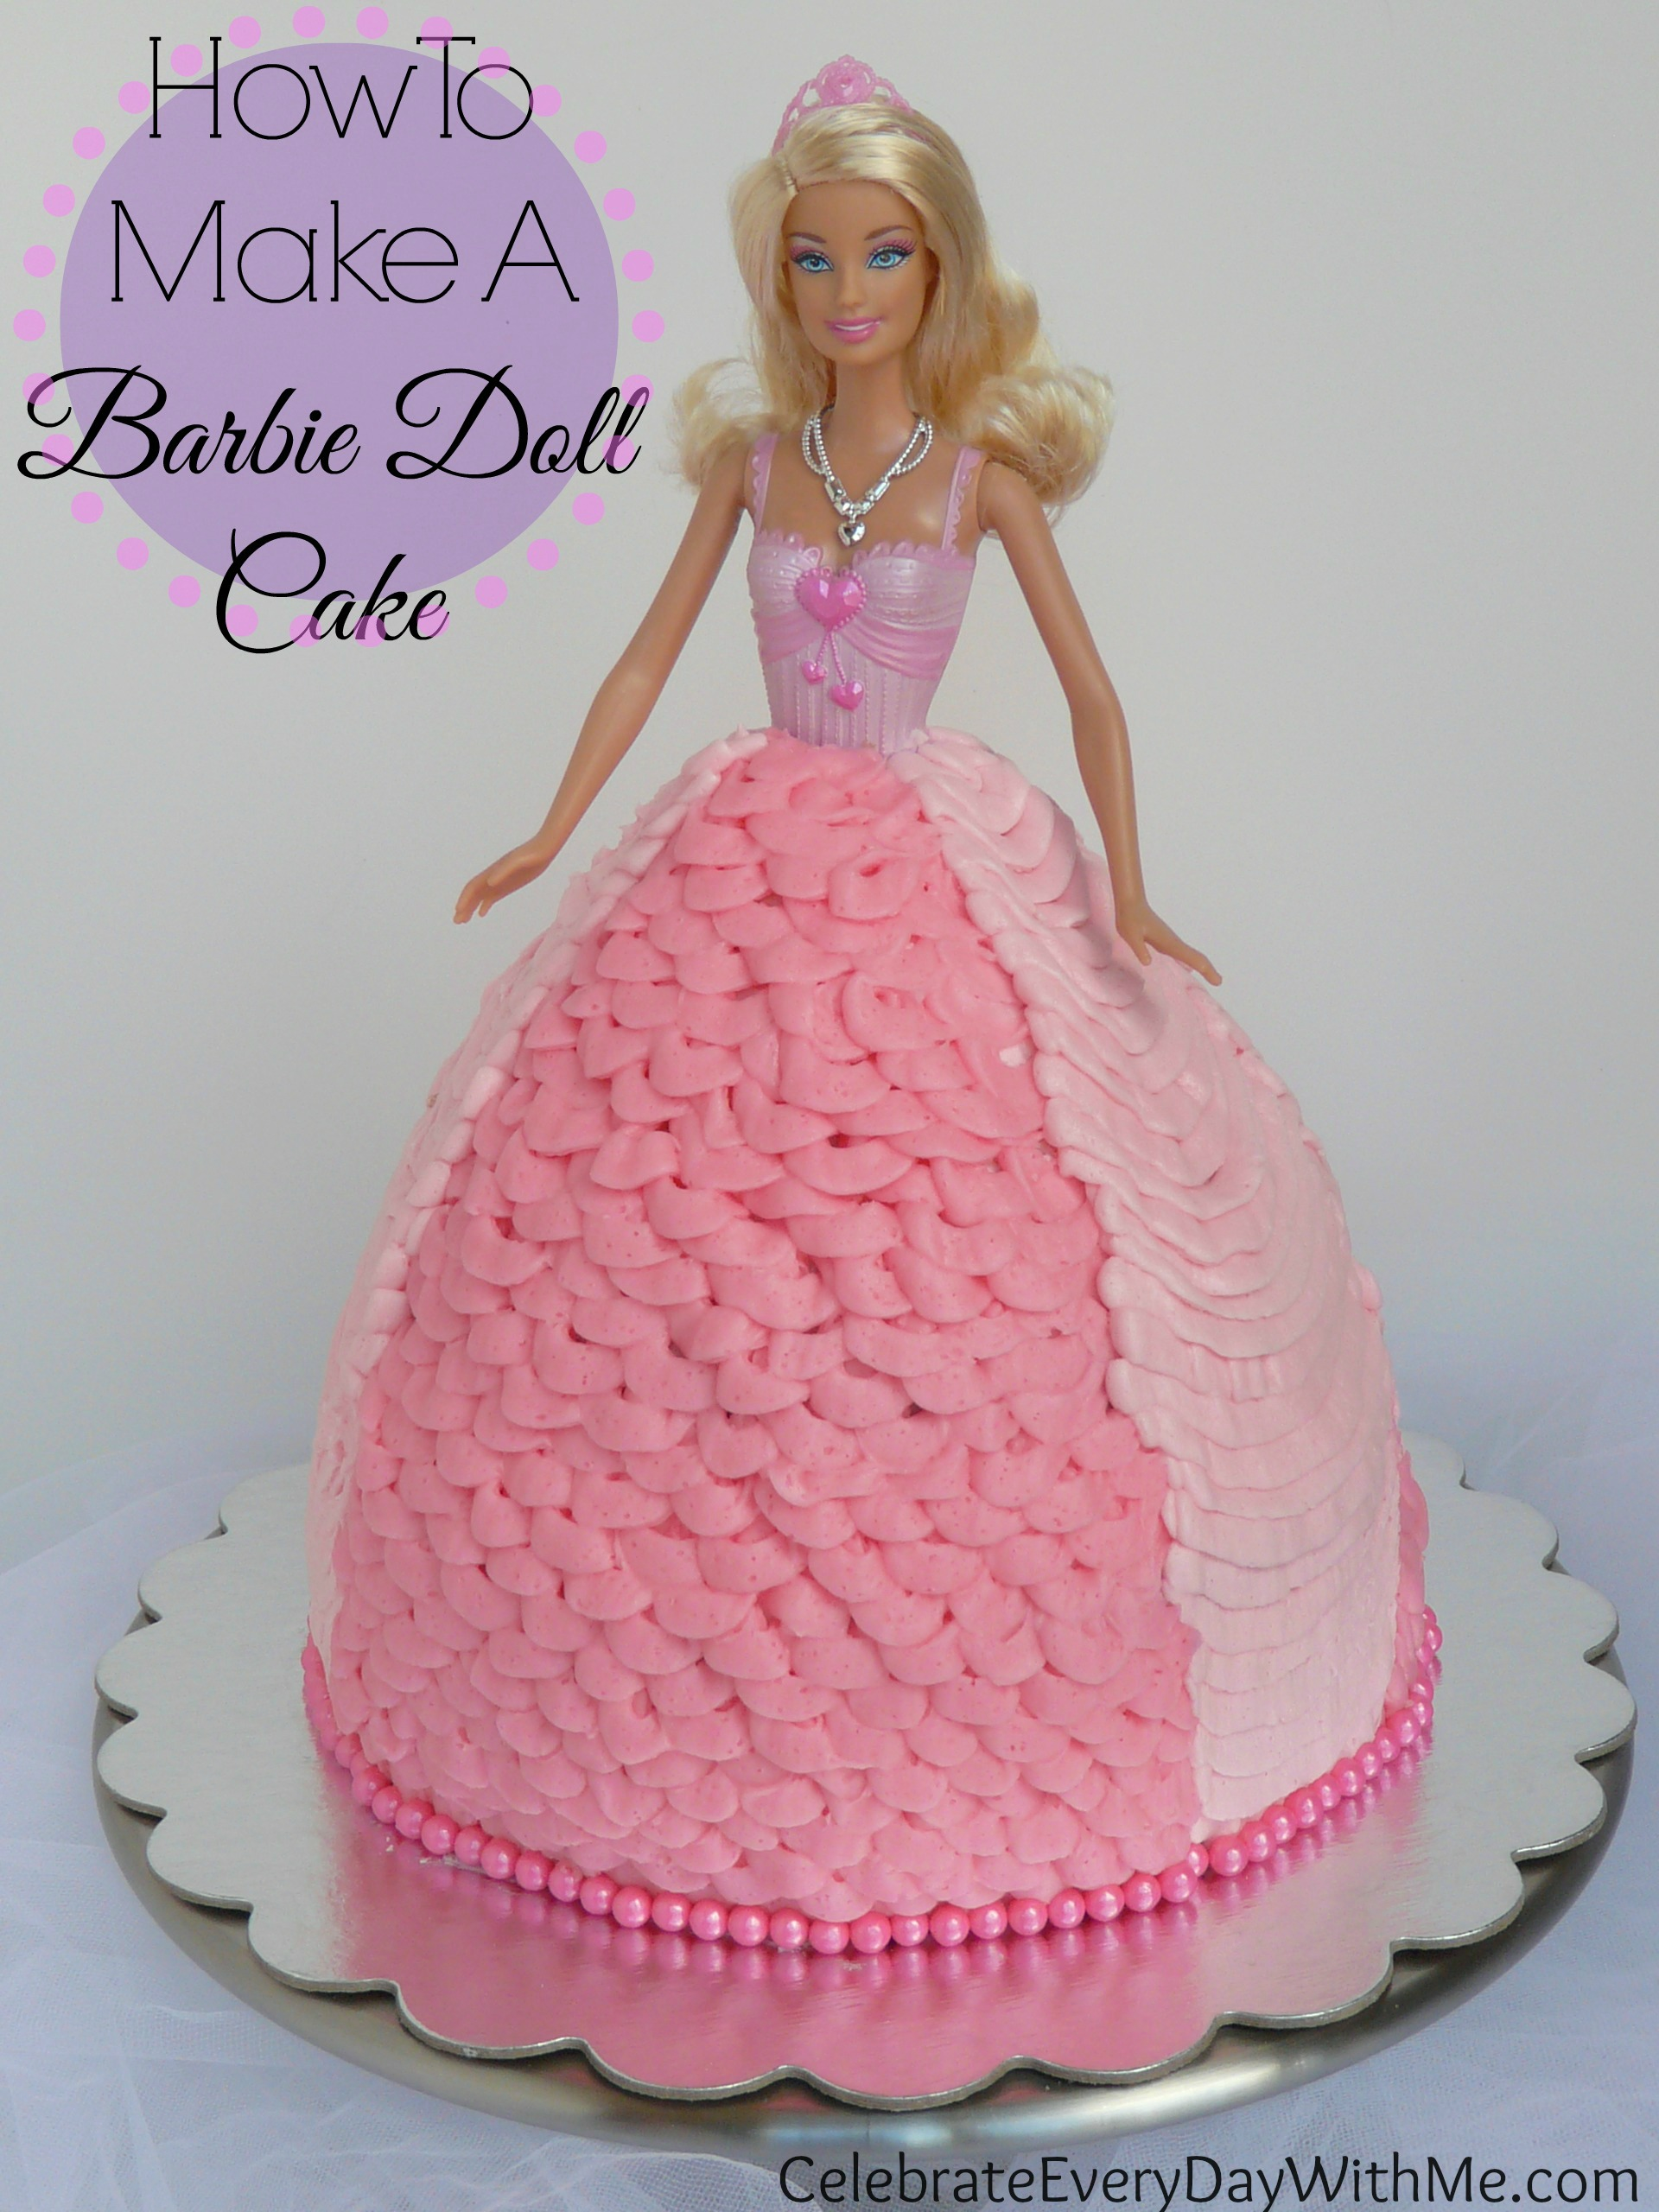 Who Makes Barbie Cakes